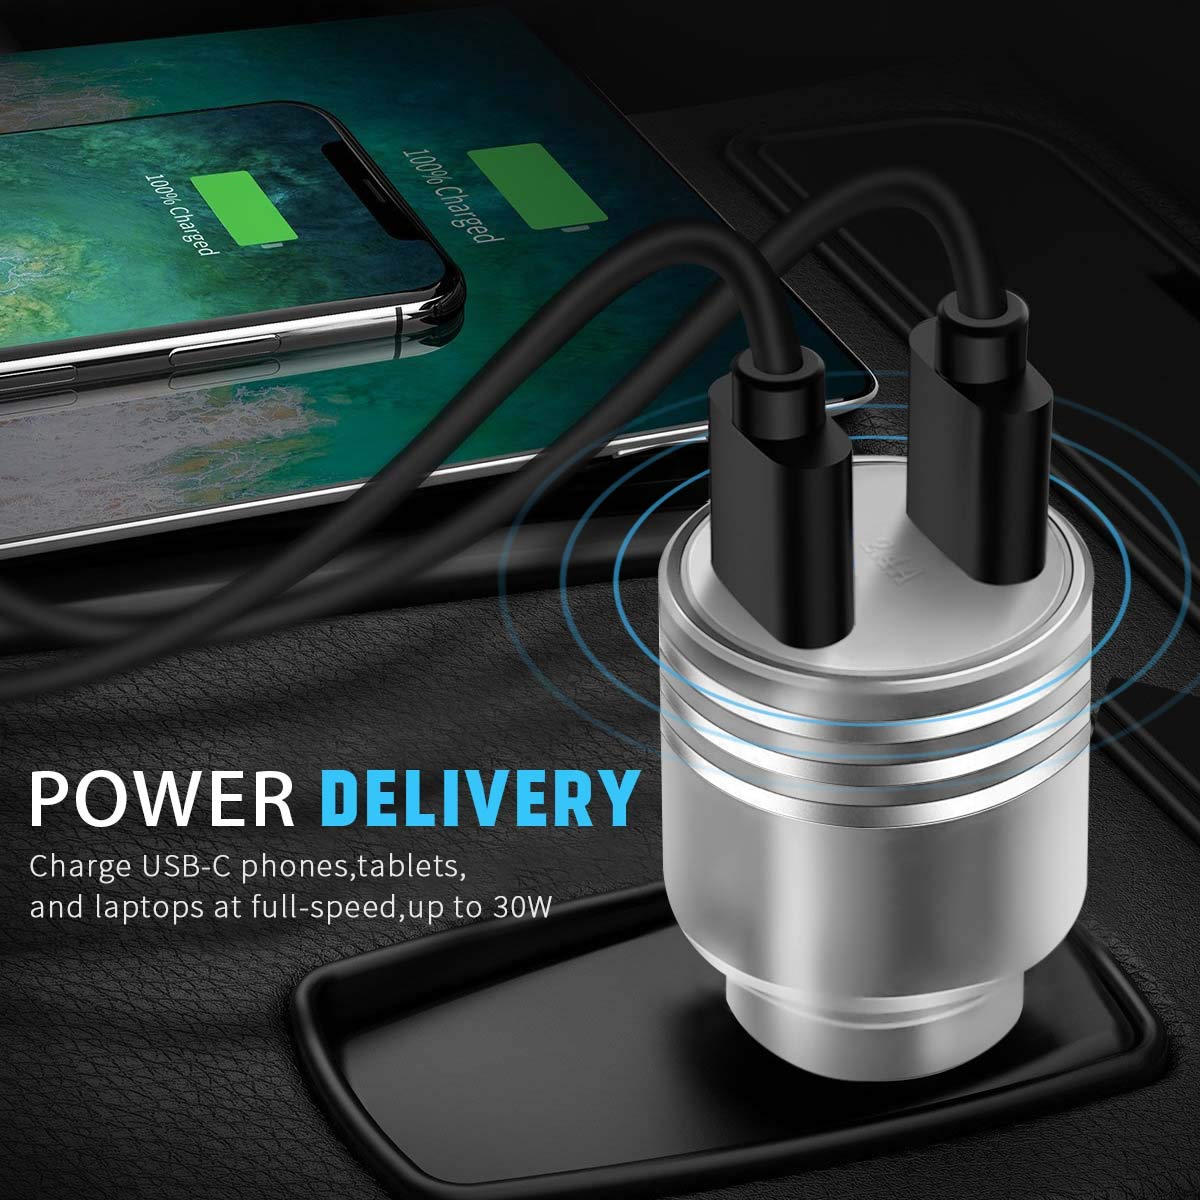 Airror USB Car Charger 3.4A Rapid Dual Smart USB Car Charger Power Adapter for iPhone X//8//8 Plus//7//6s//6s Plus//Galaxy Note 8//S9//S8//S7//S6//Edge//Plus and More 895 4352749407